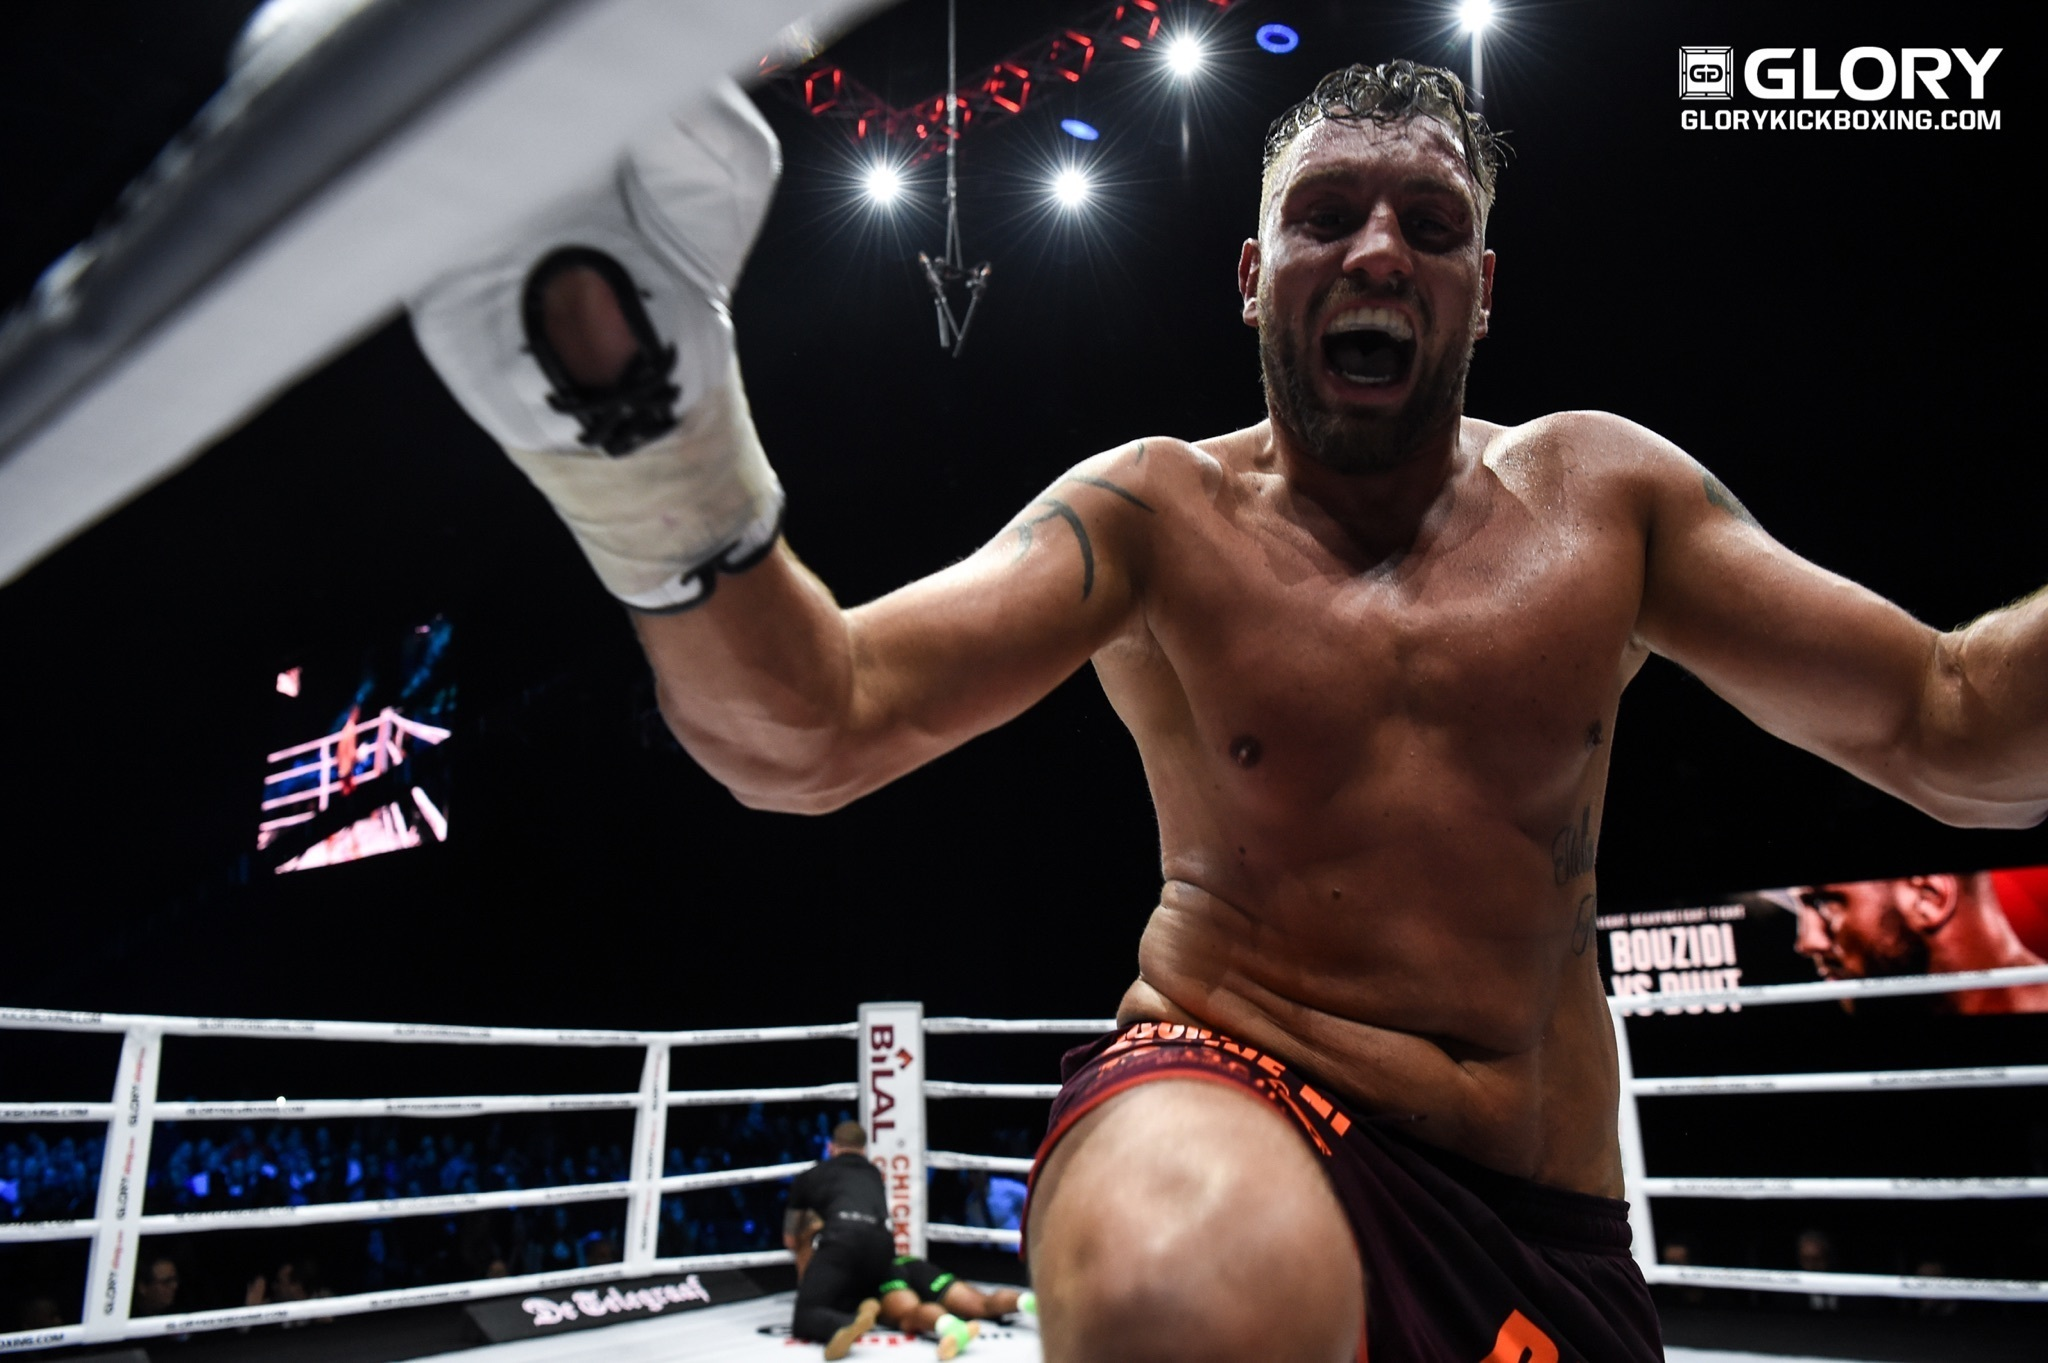 Duut gets revenge, crushes Bouzidi with highlight-reel knockout